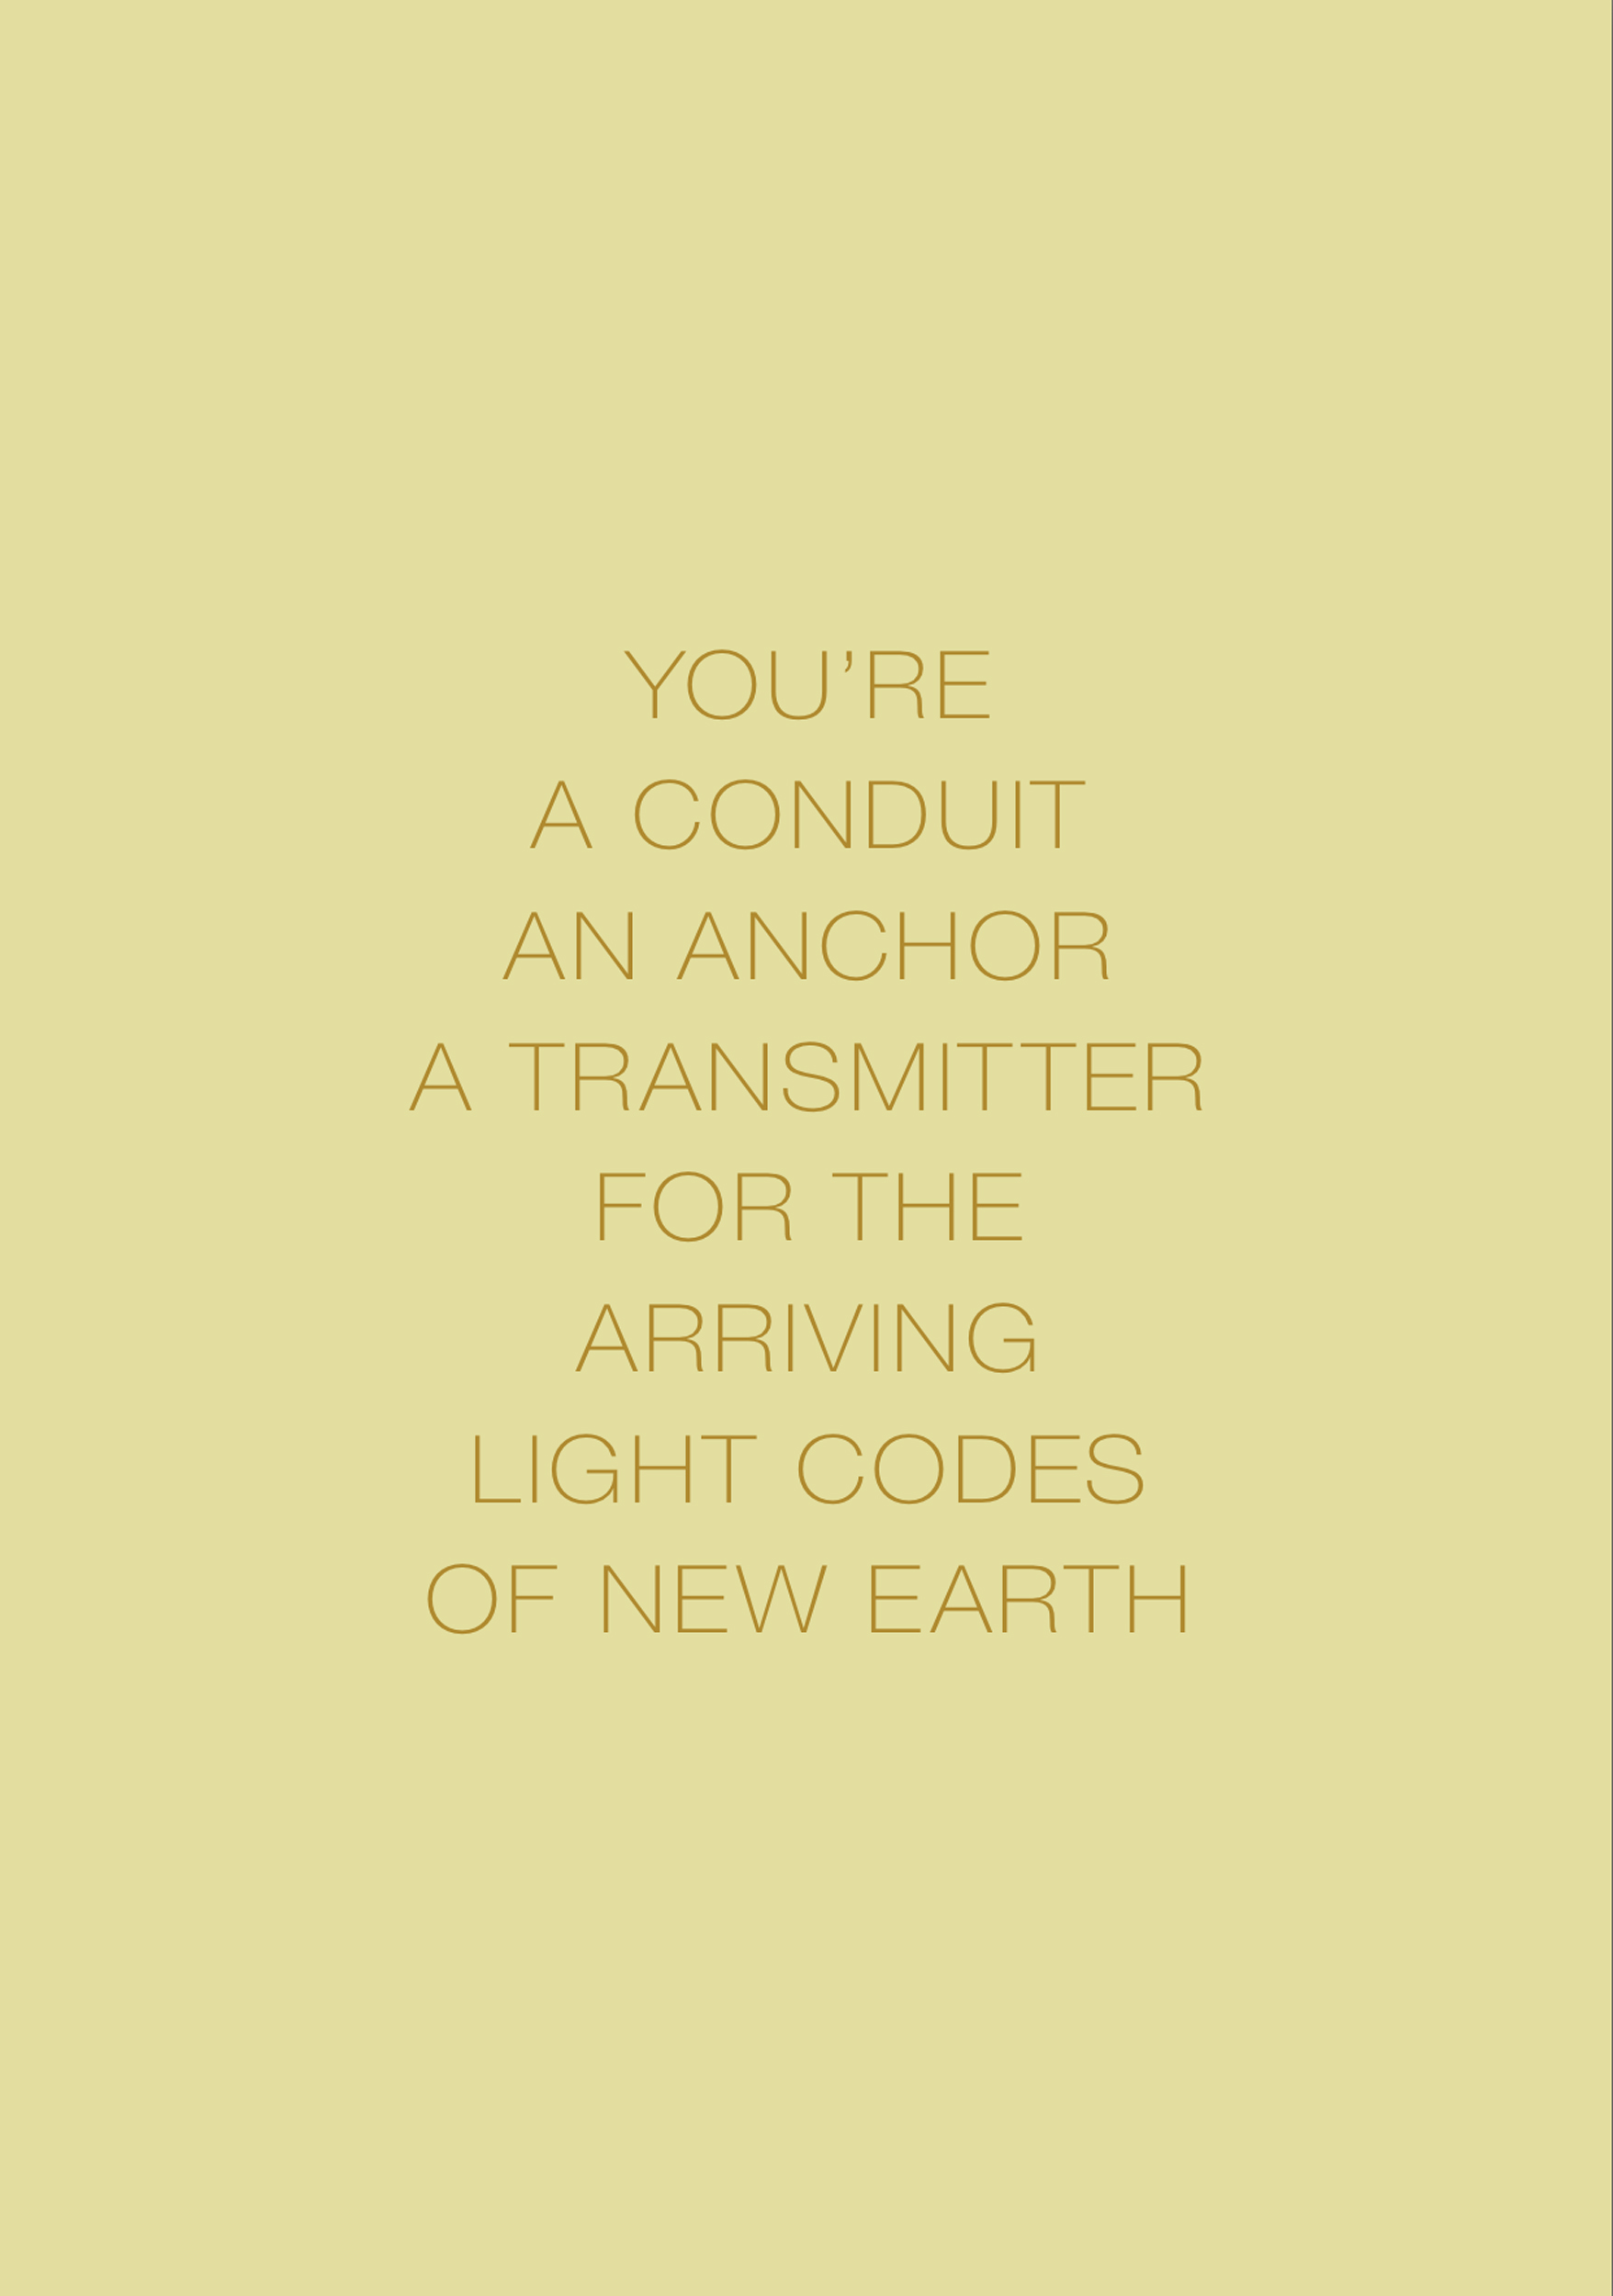 Light Codes Mantra: You're a Conduit, An Anchor, A Transmitter for the Arriving Light Codes of New Earth